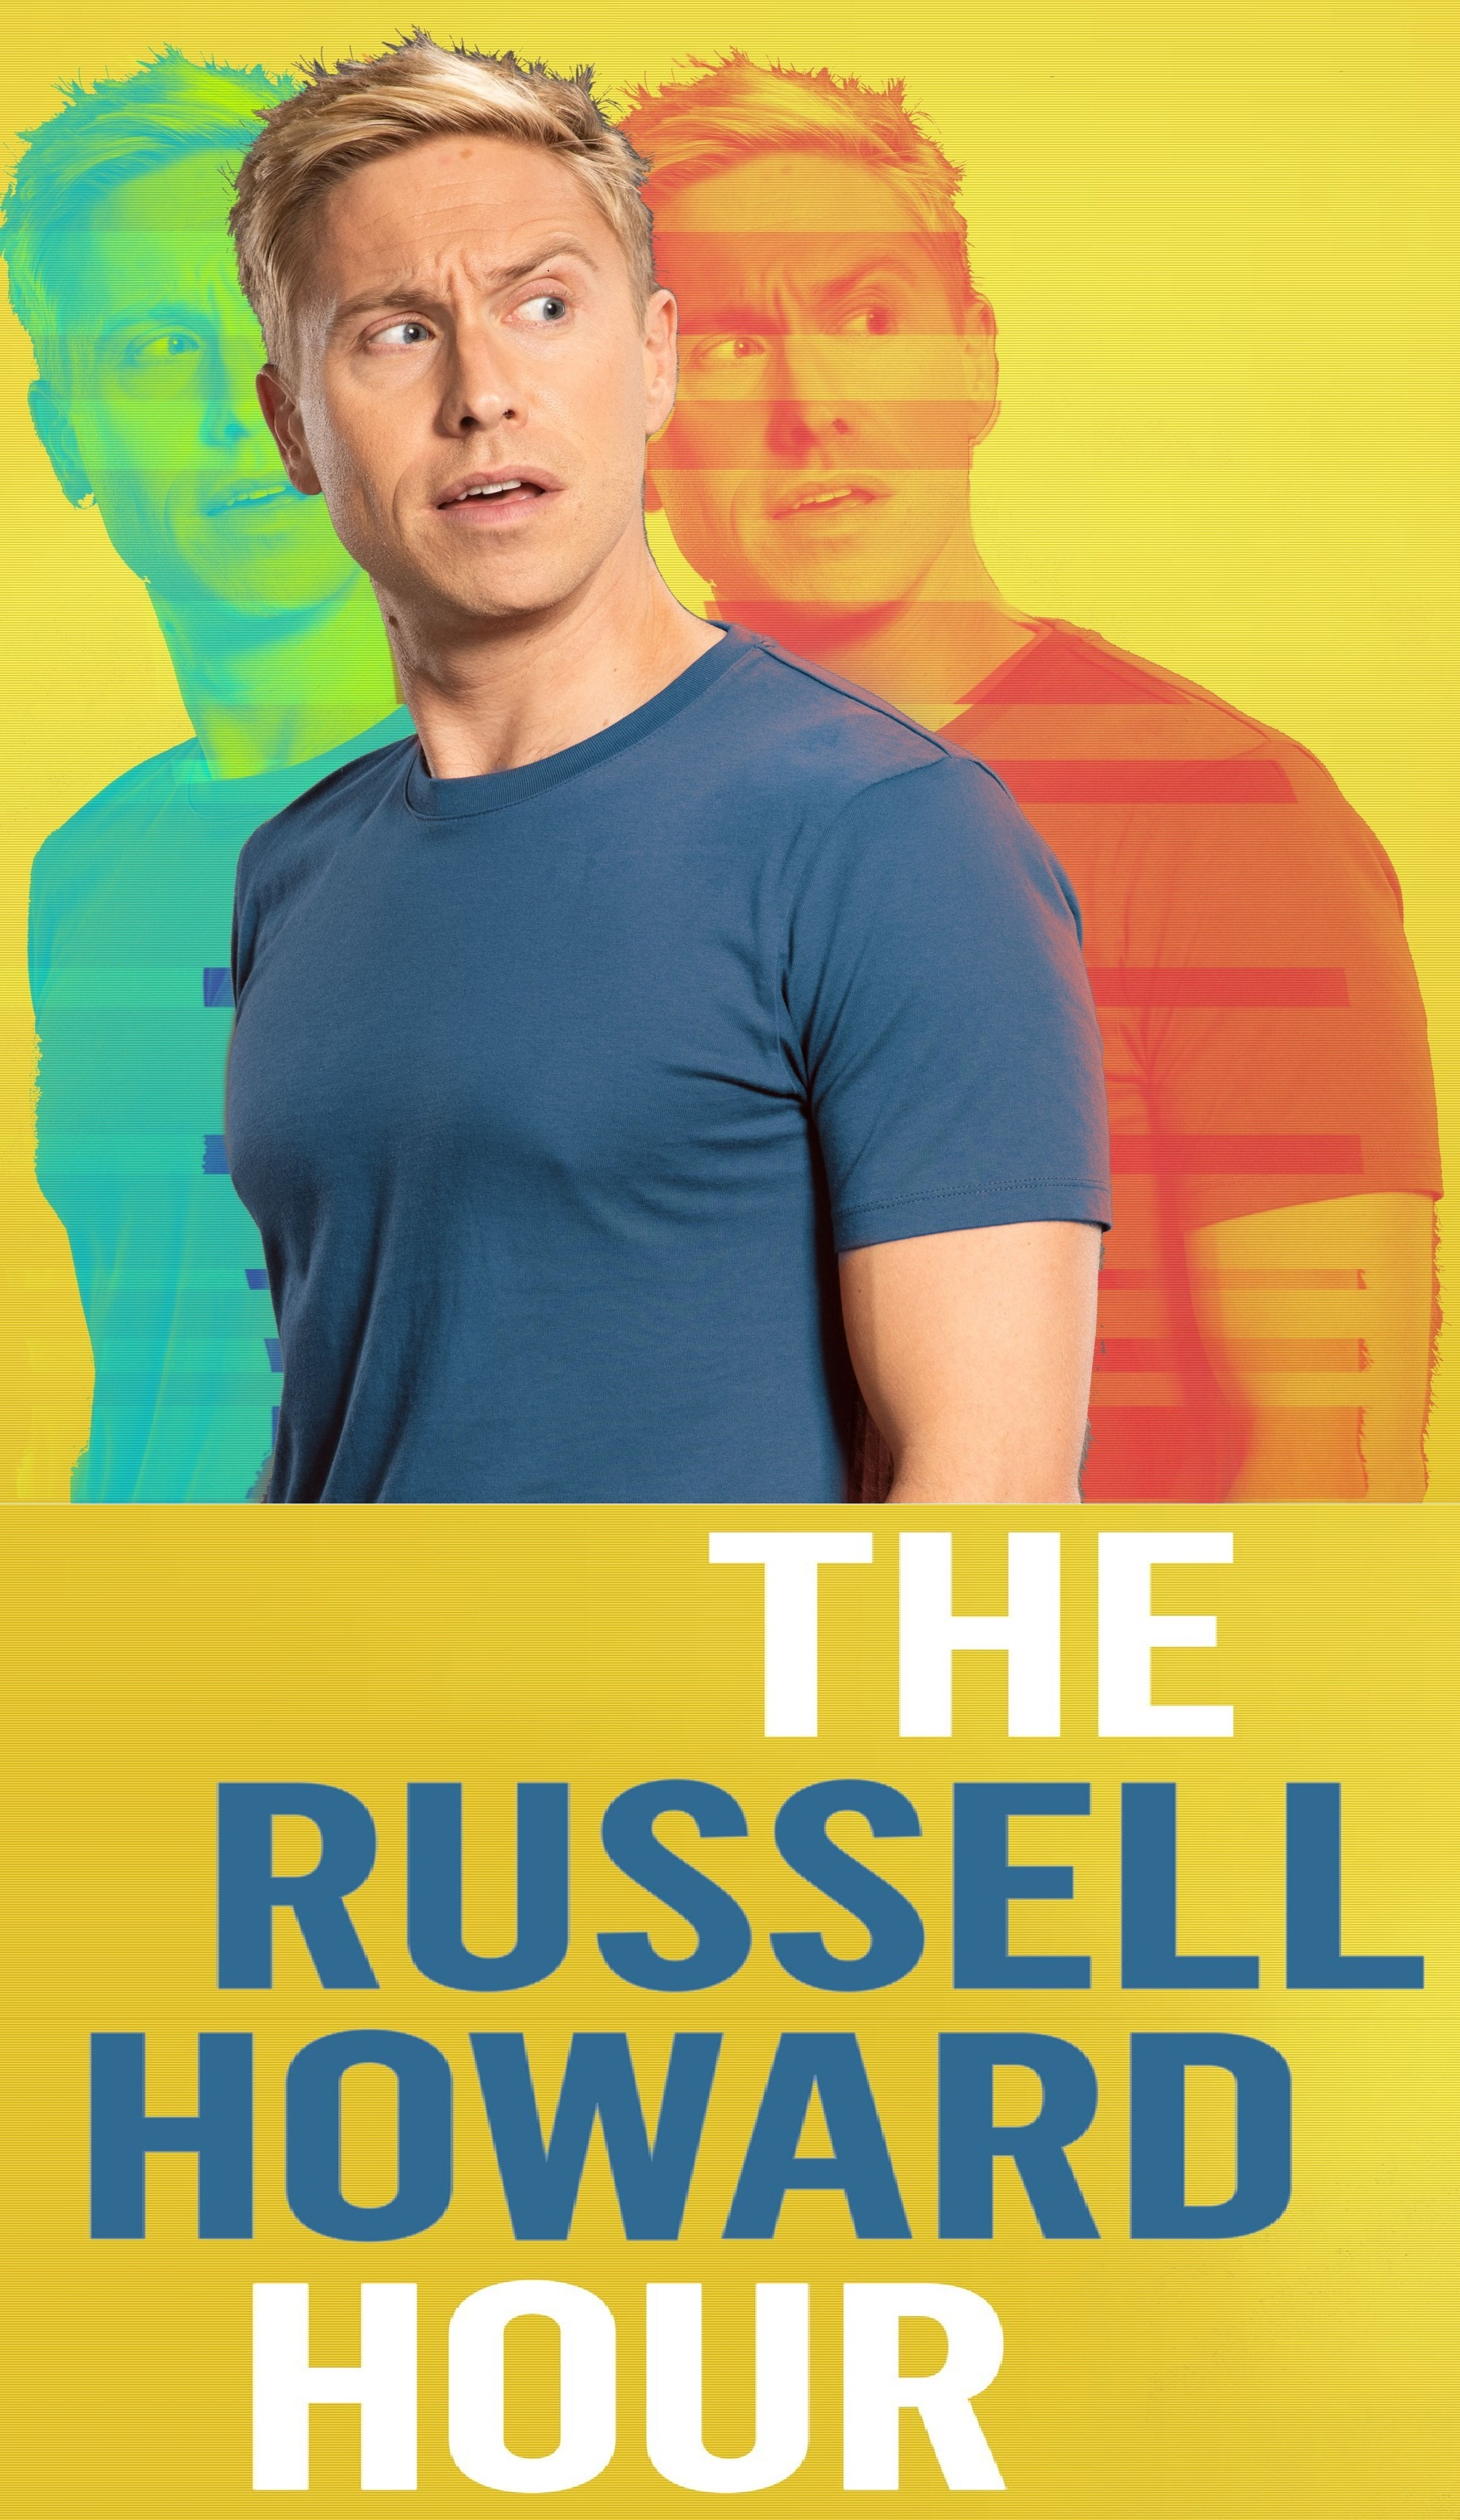 The Russell Howard Hour Season 4 Episode 2